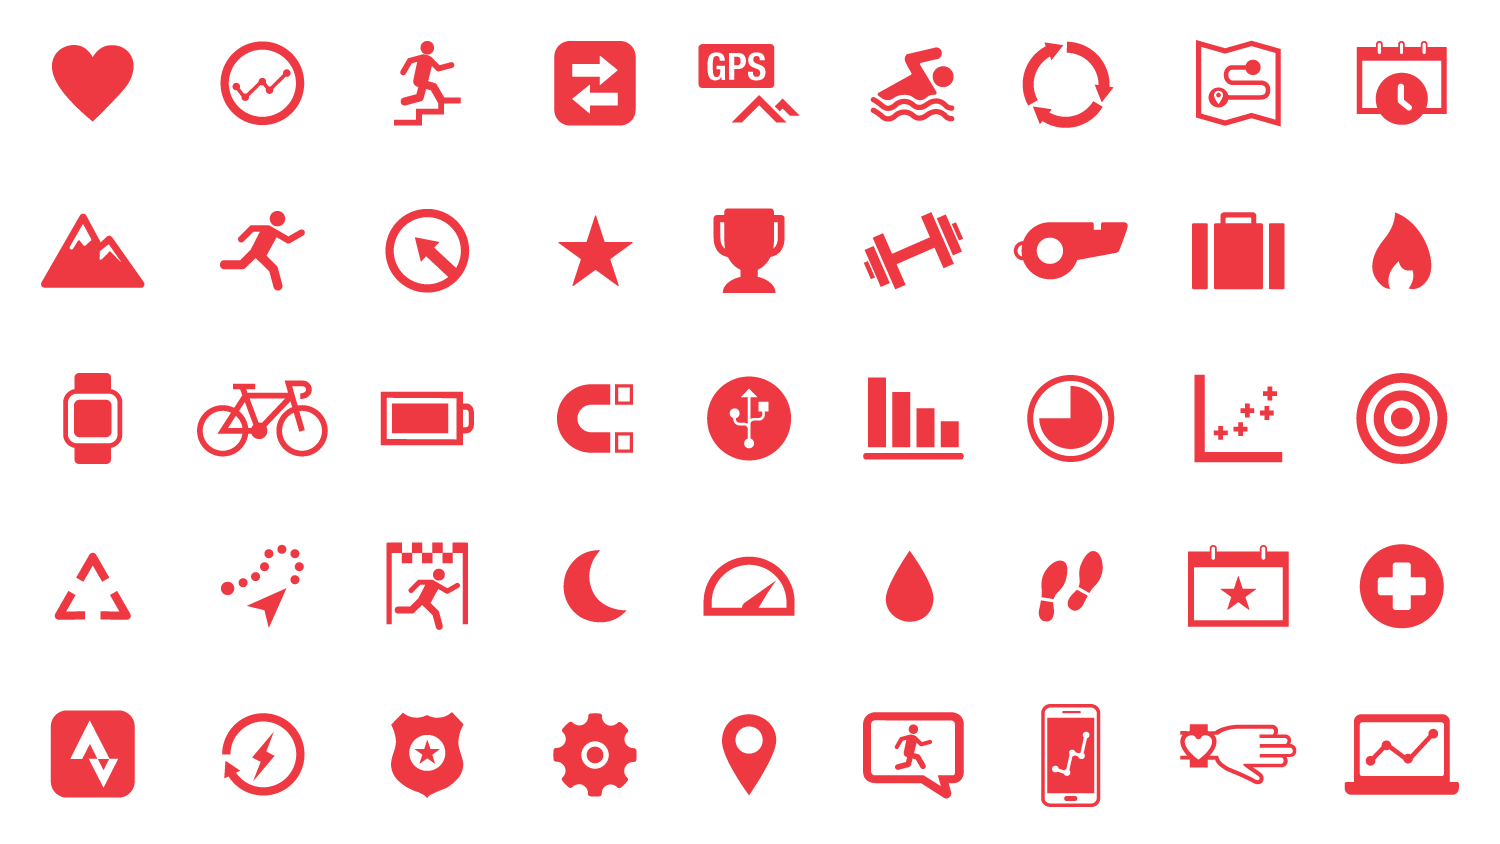 Iconography I created for the brand to use on their website